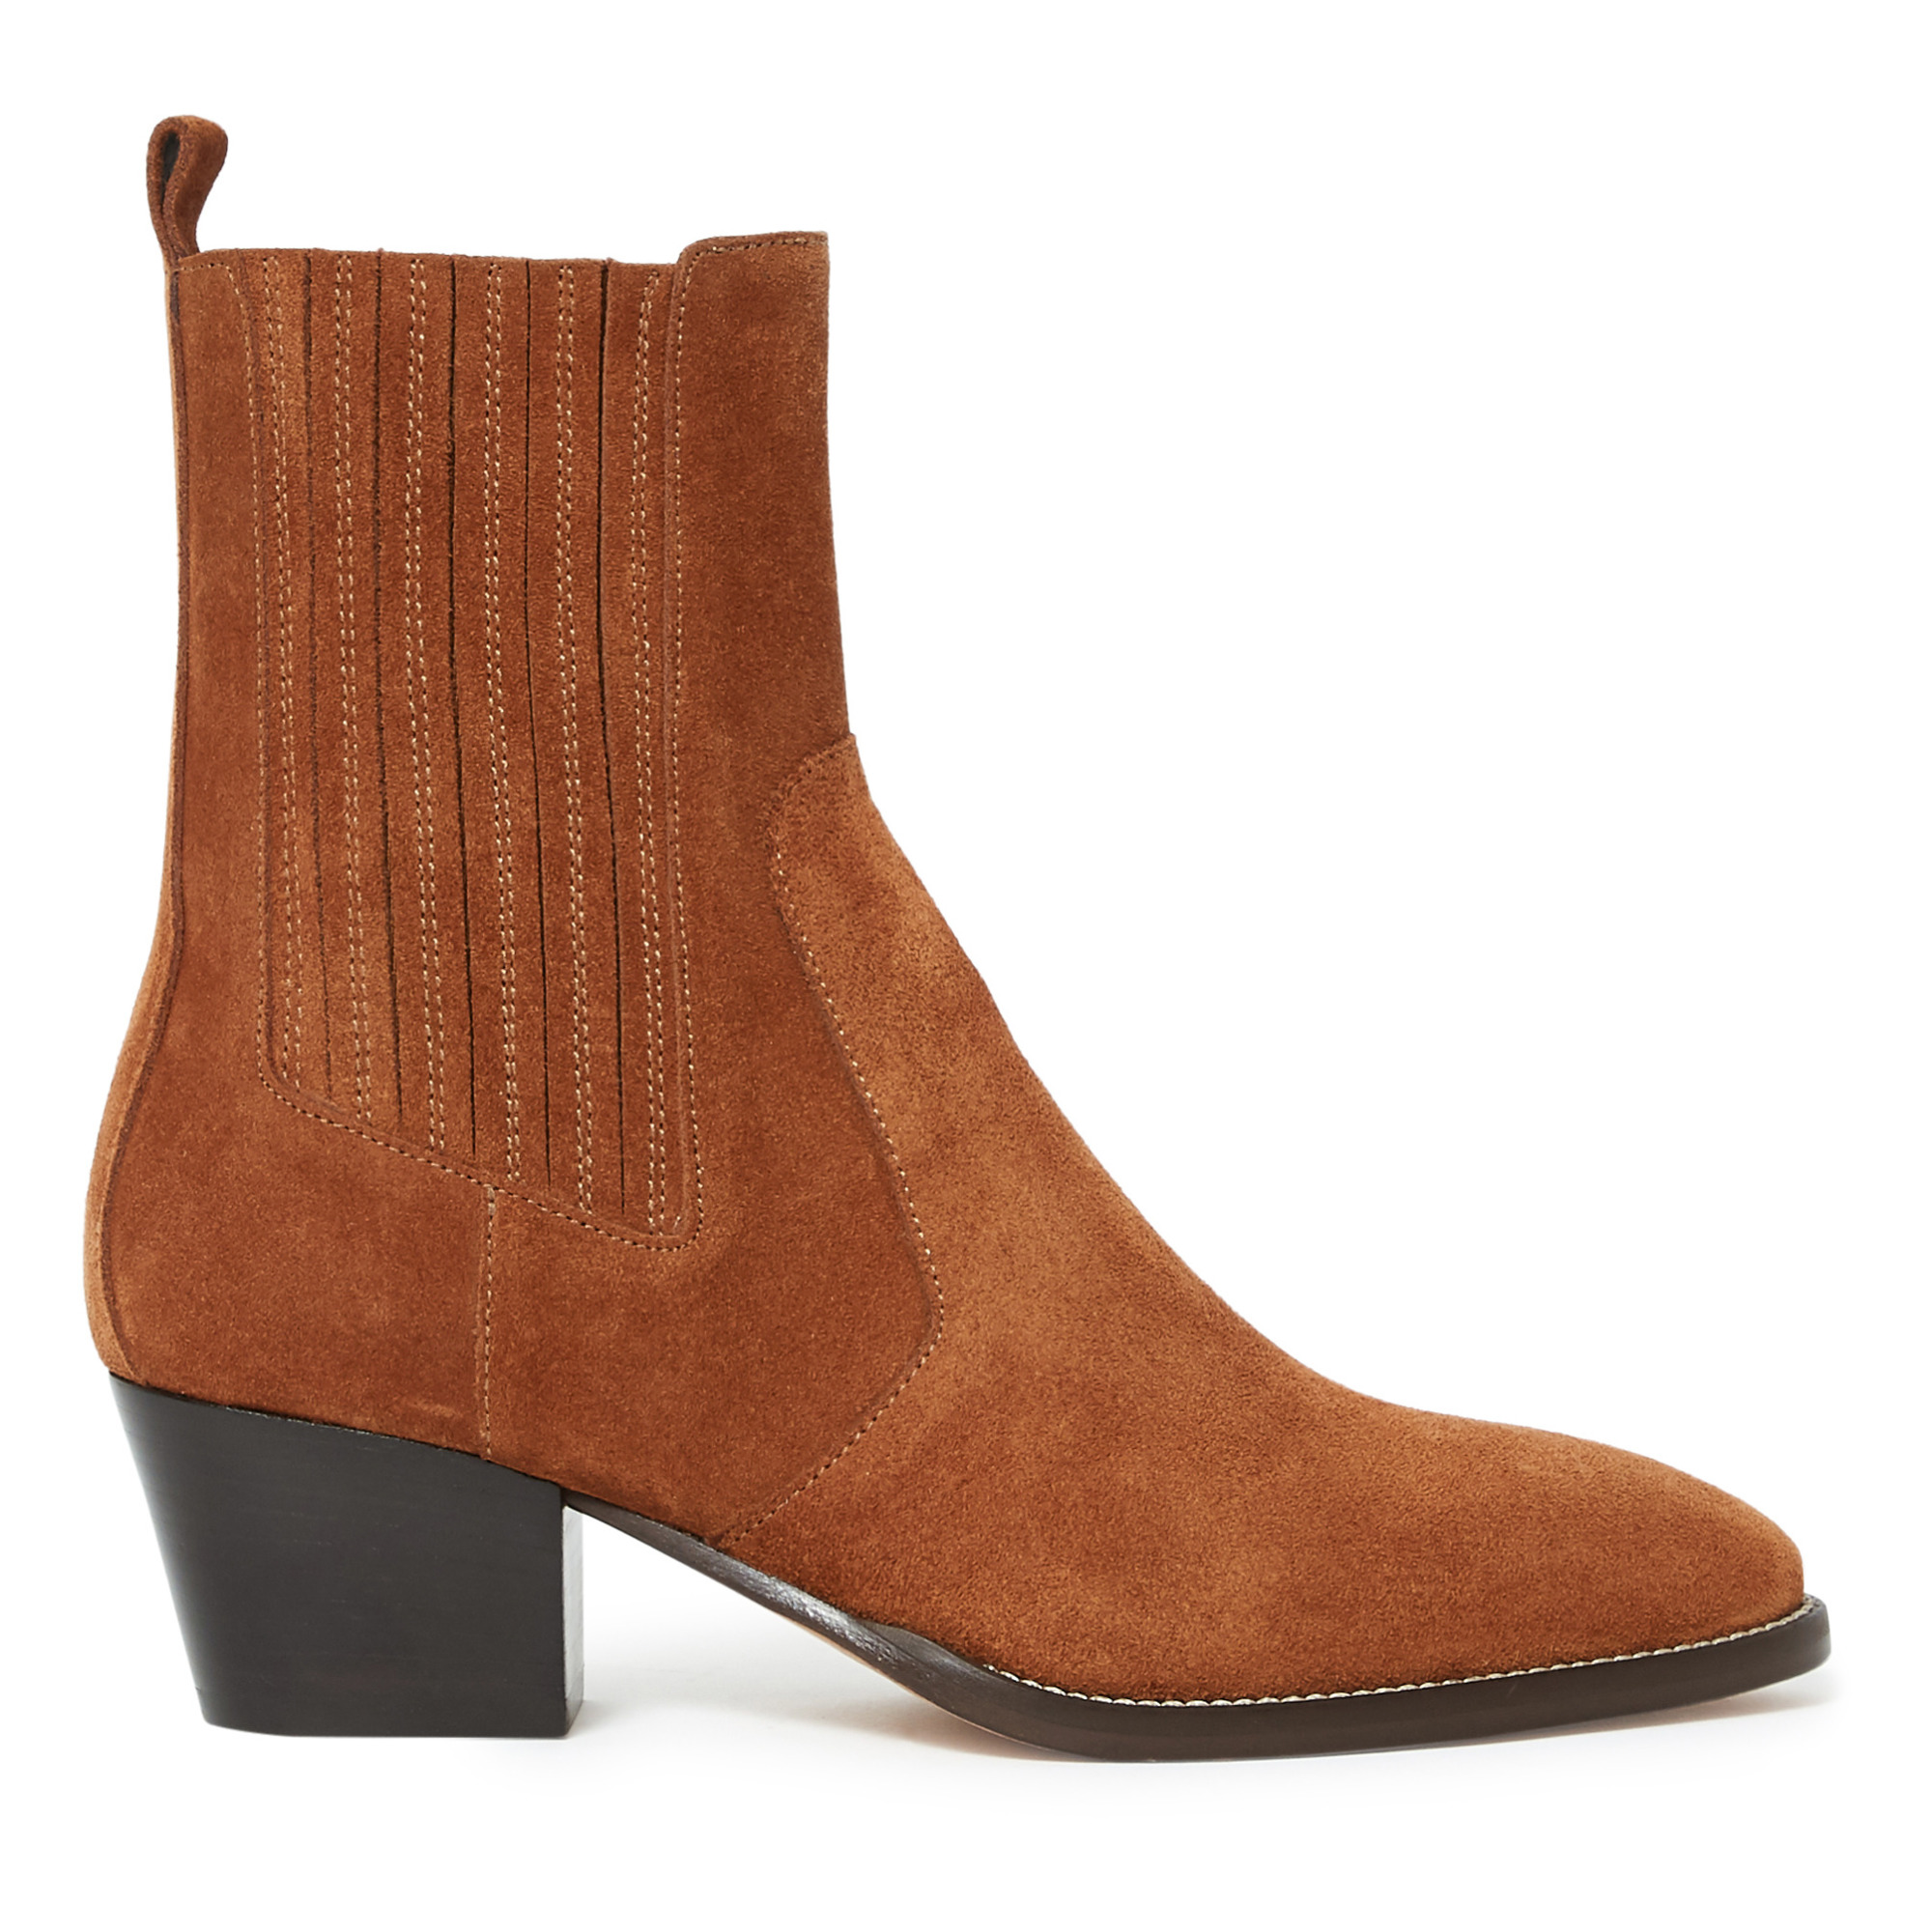 Mania Suede Leather Boots